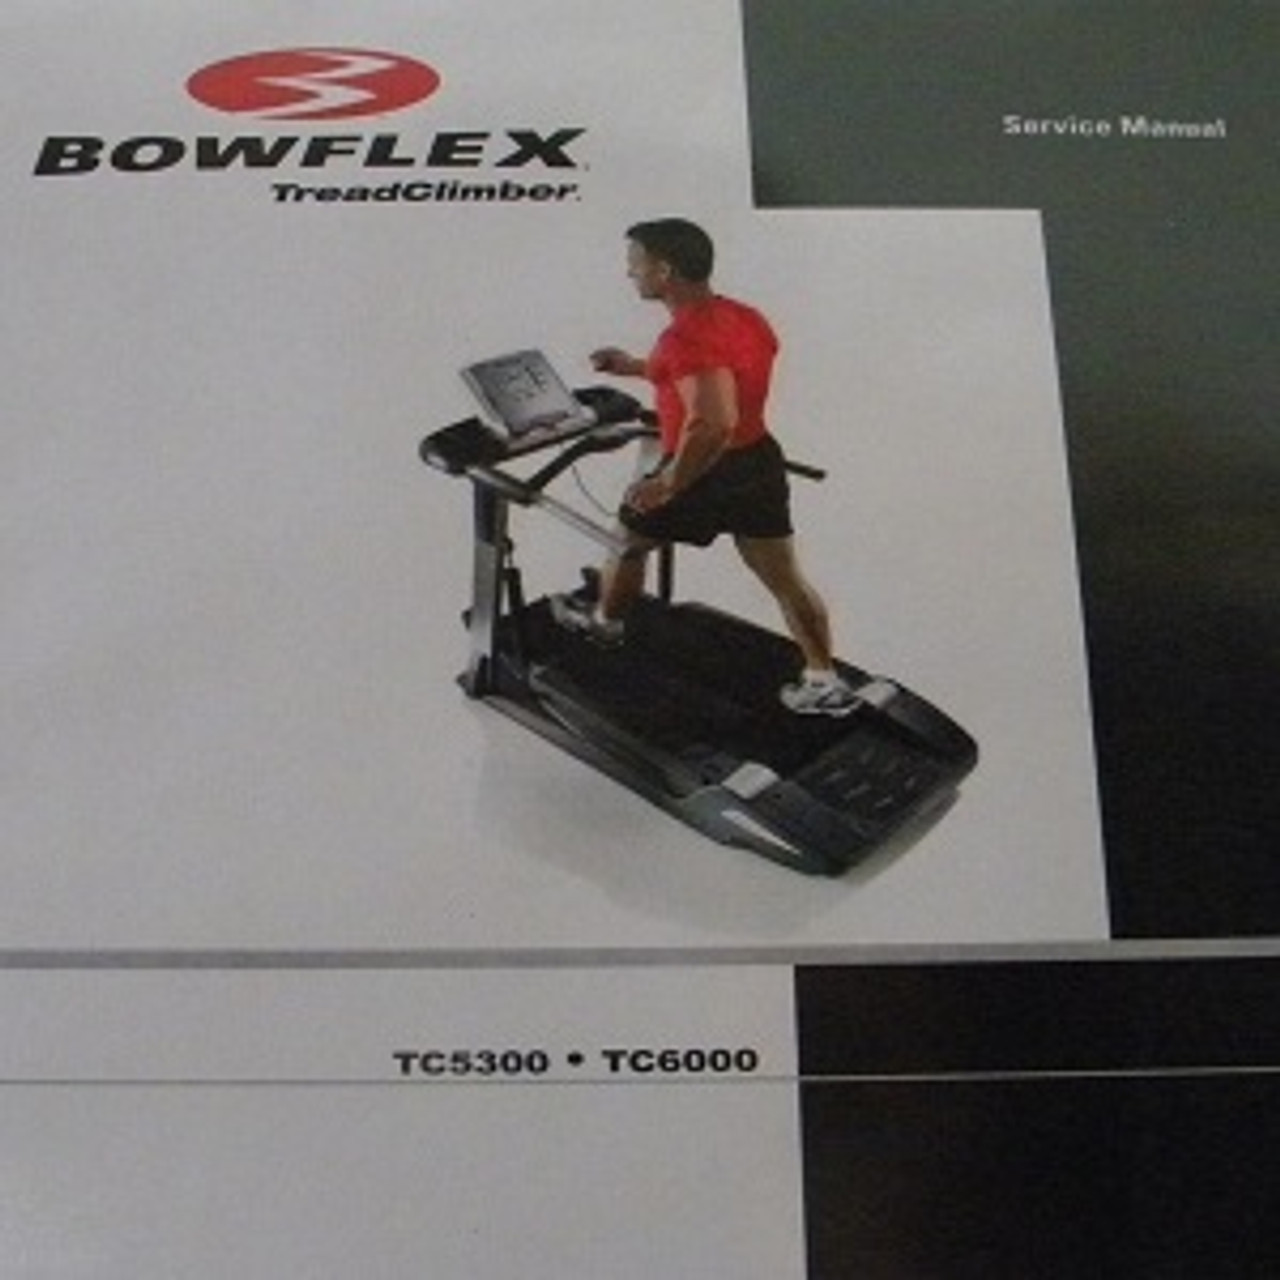 BowFlex Treadclimber Service Manual TC5300 TC6000